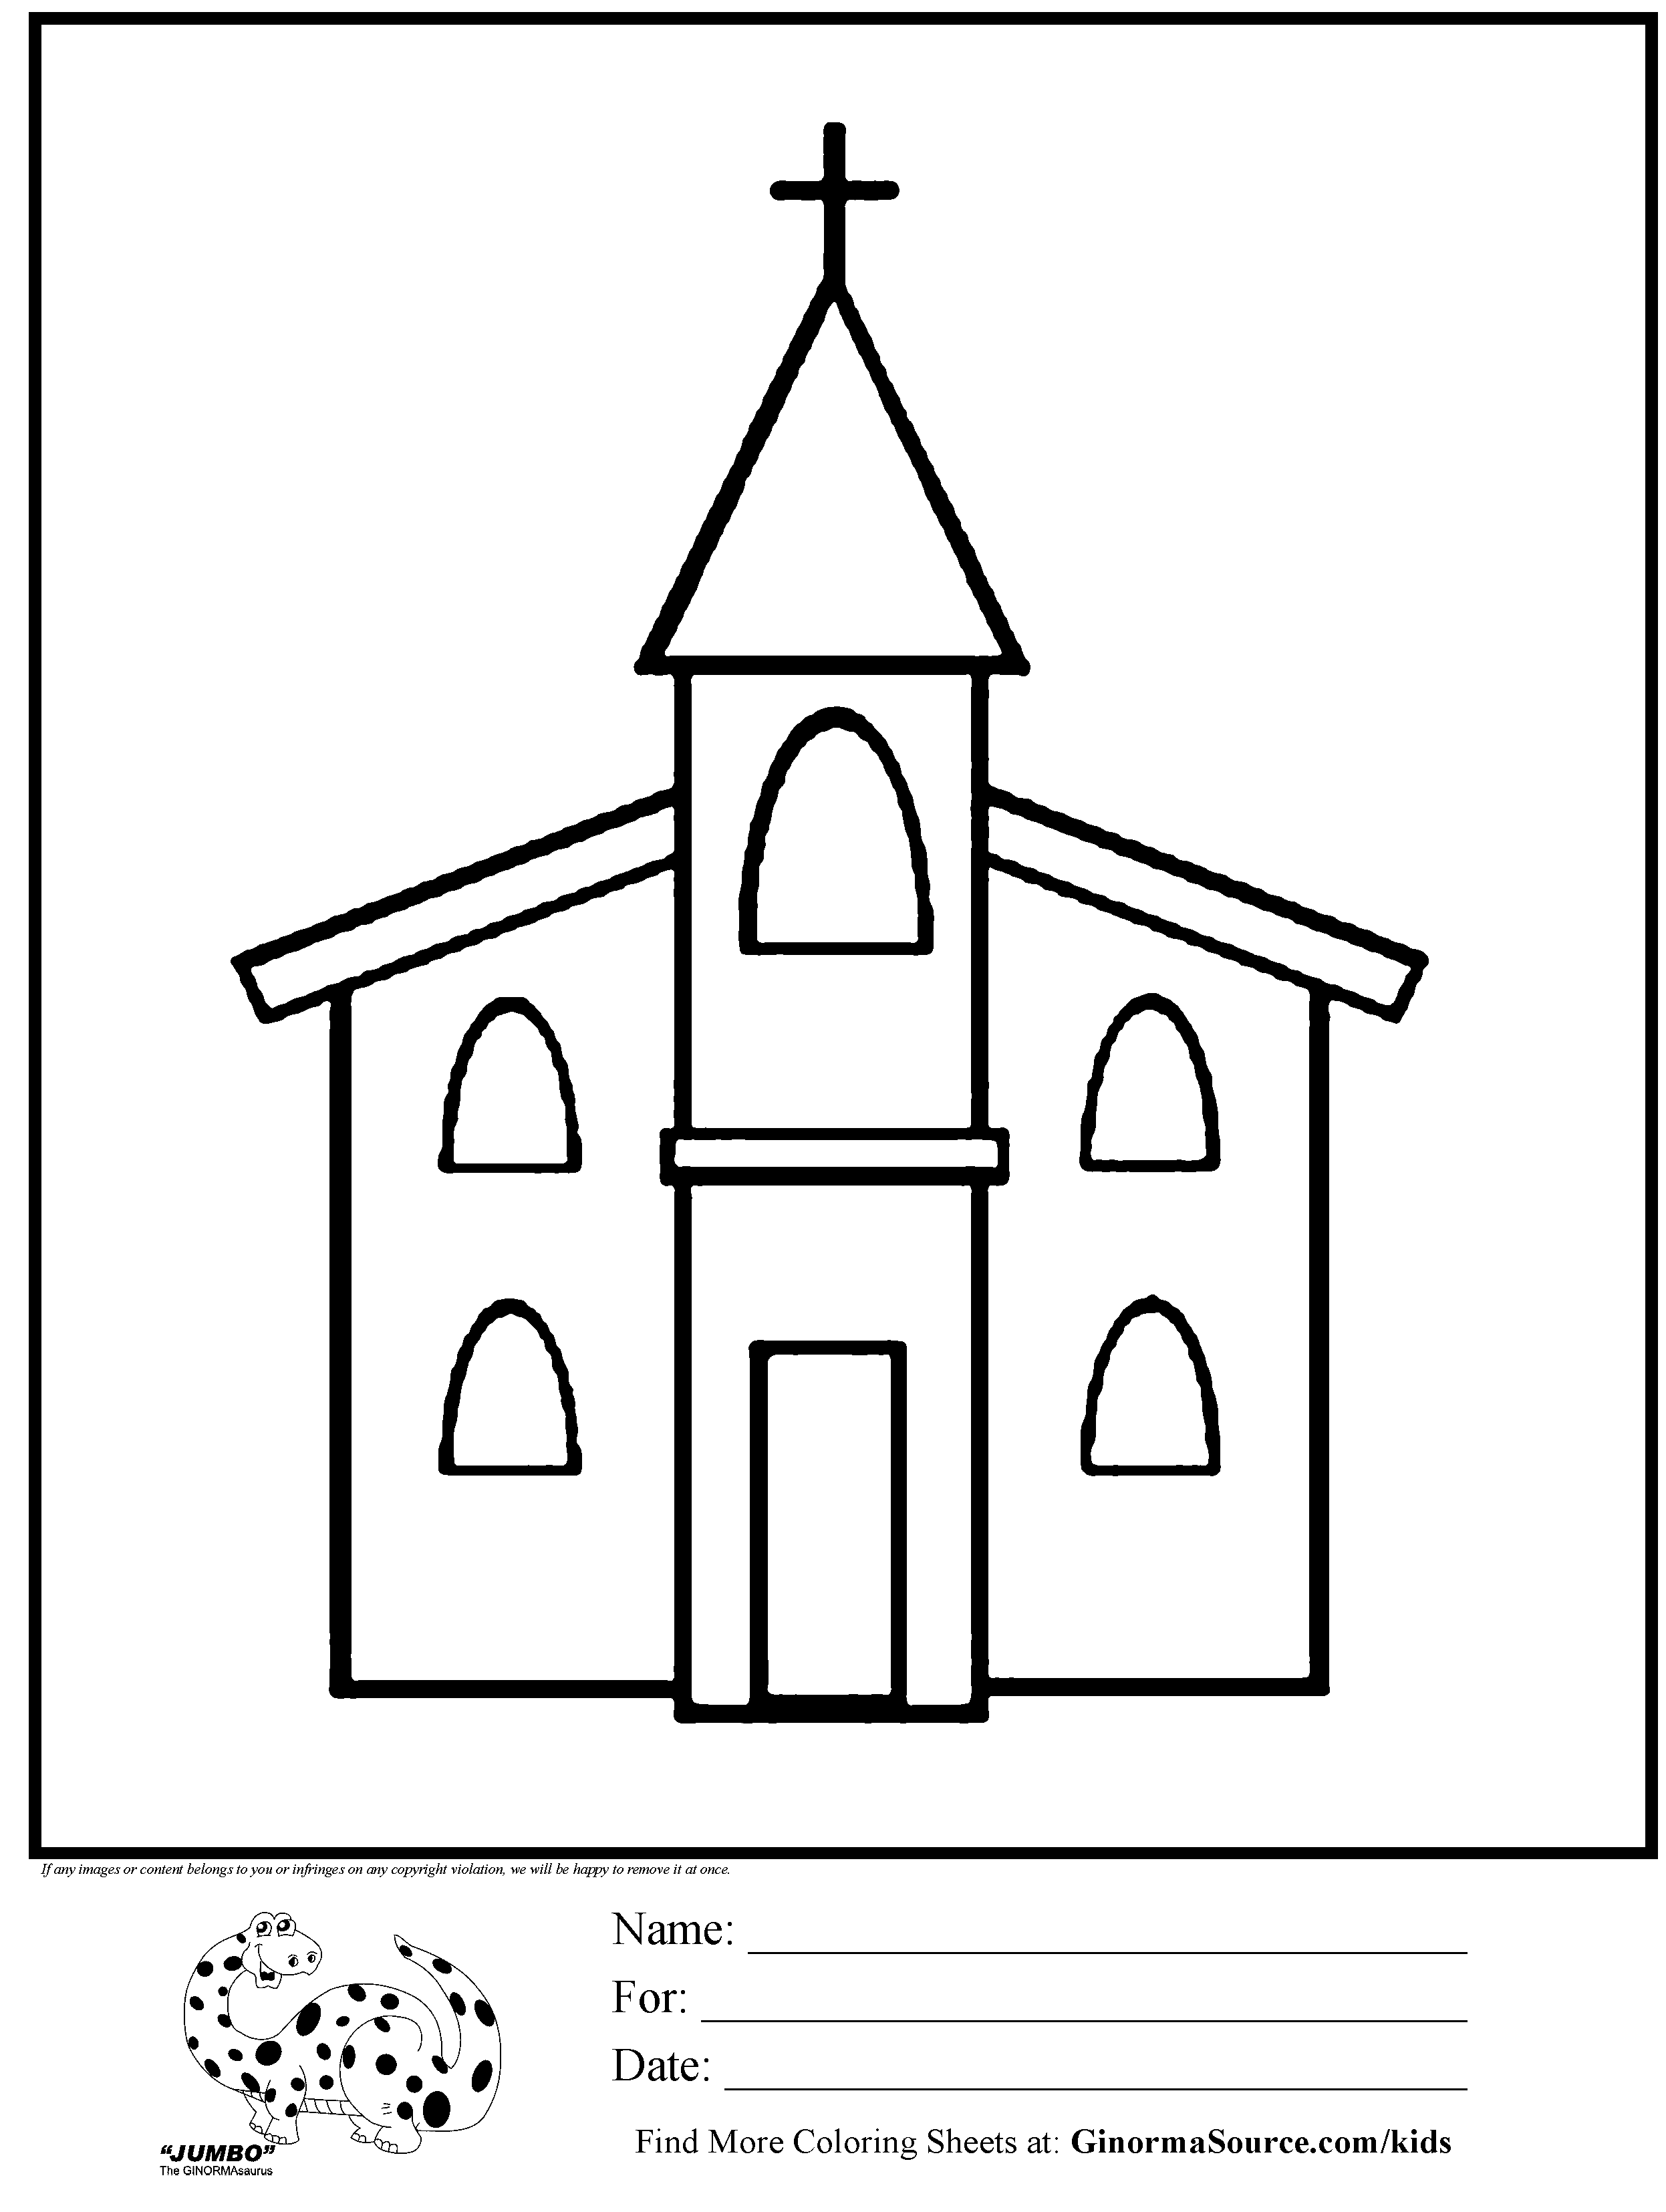 church coloring sheet church coloring pages coloring pages to download and print church sheet coloring